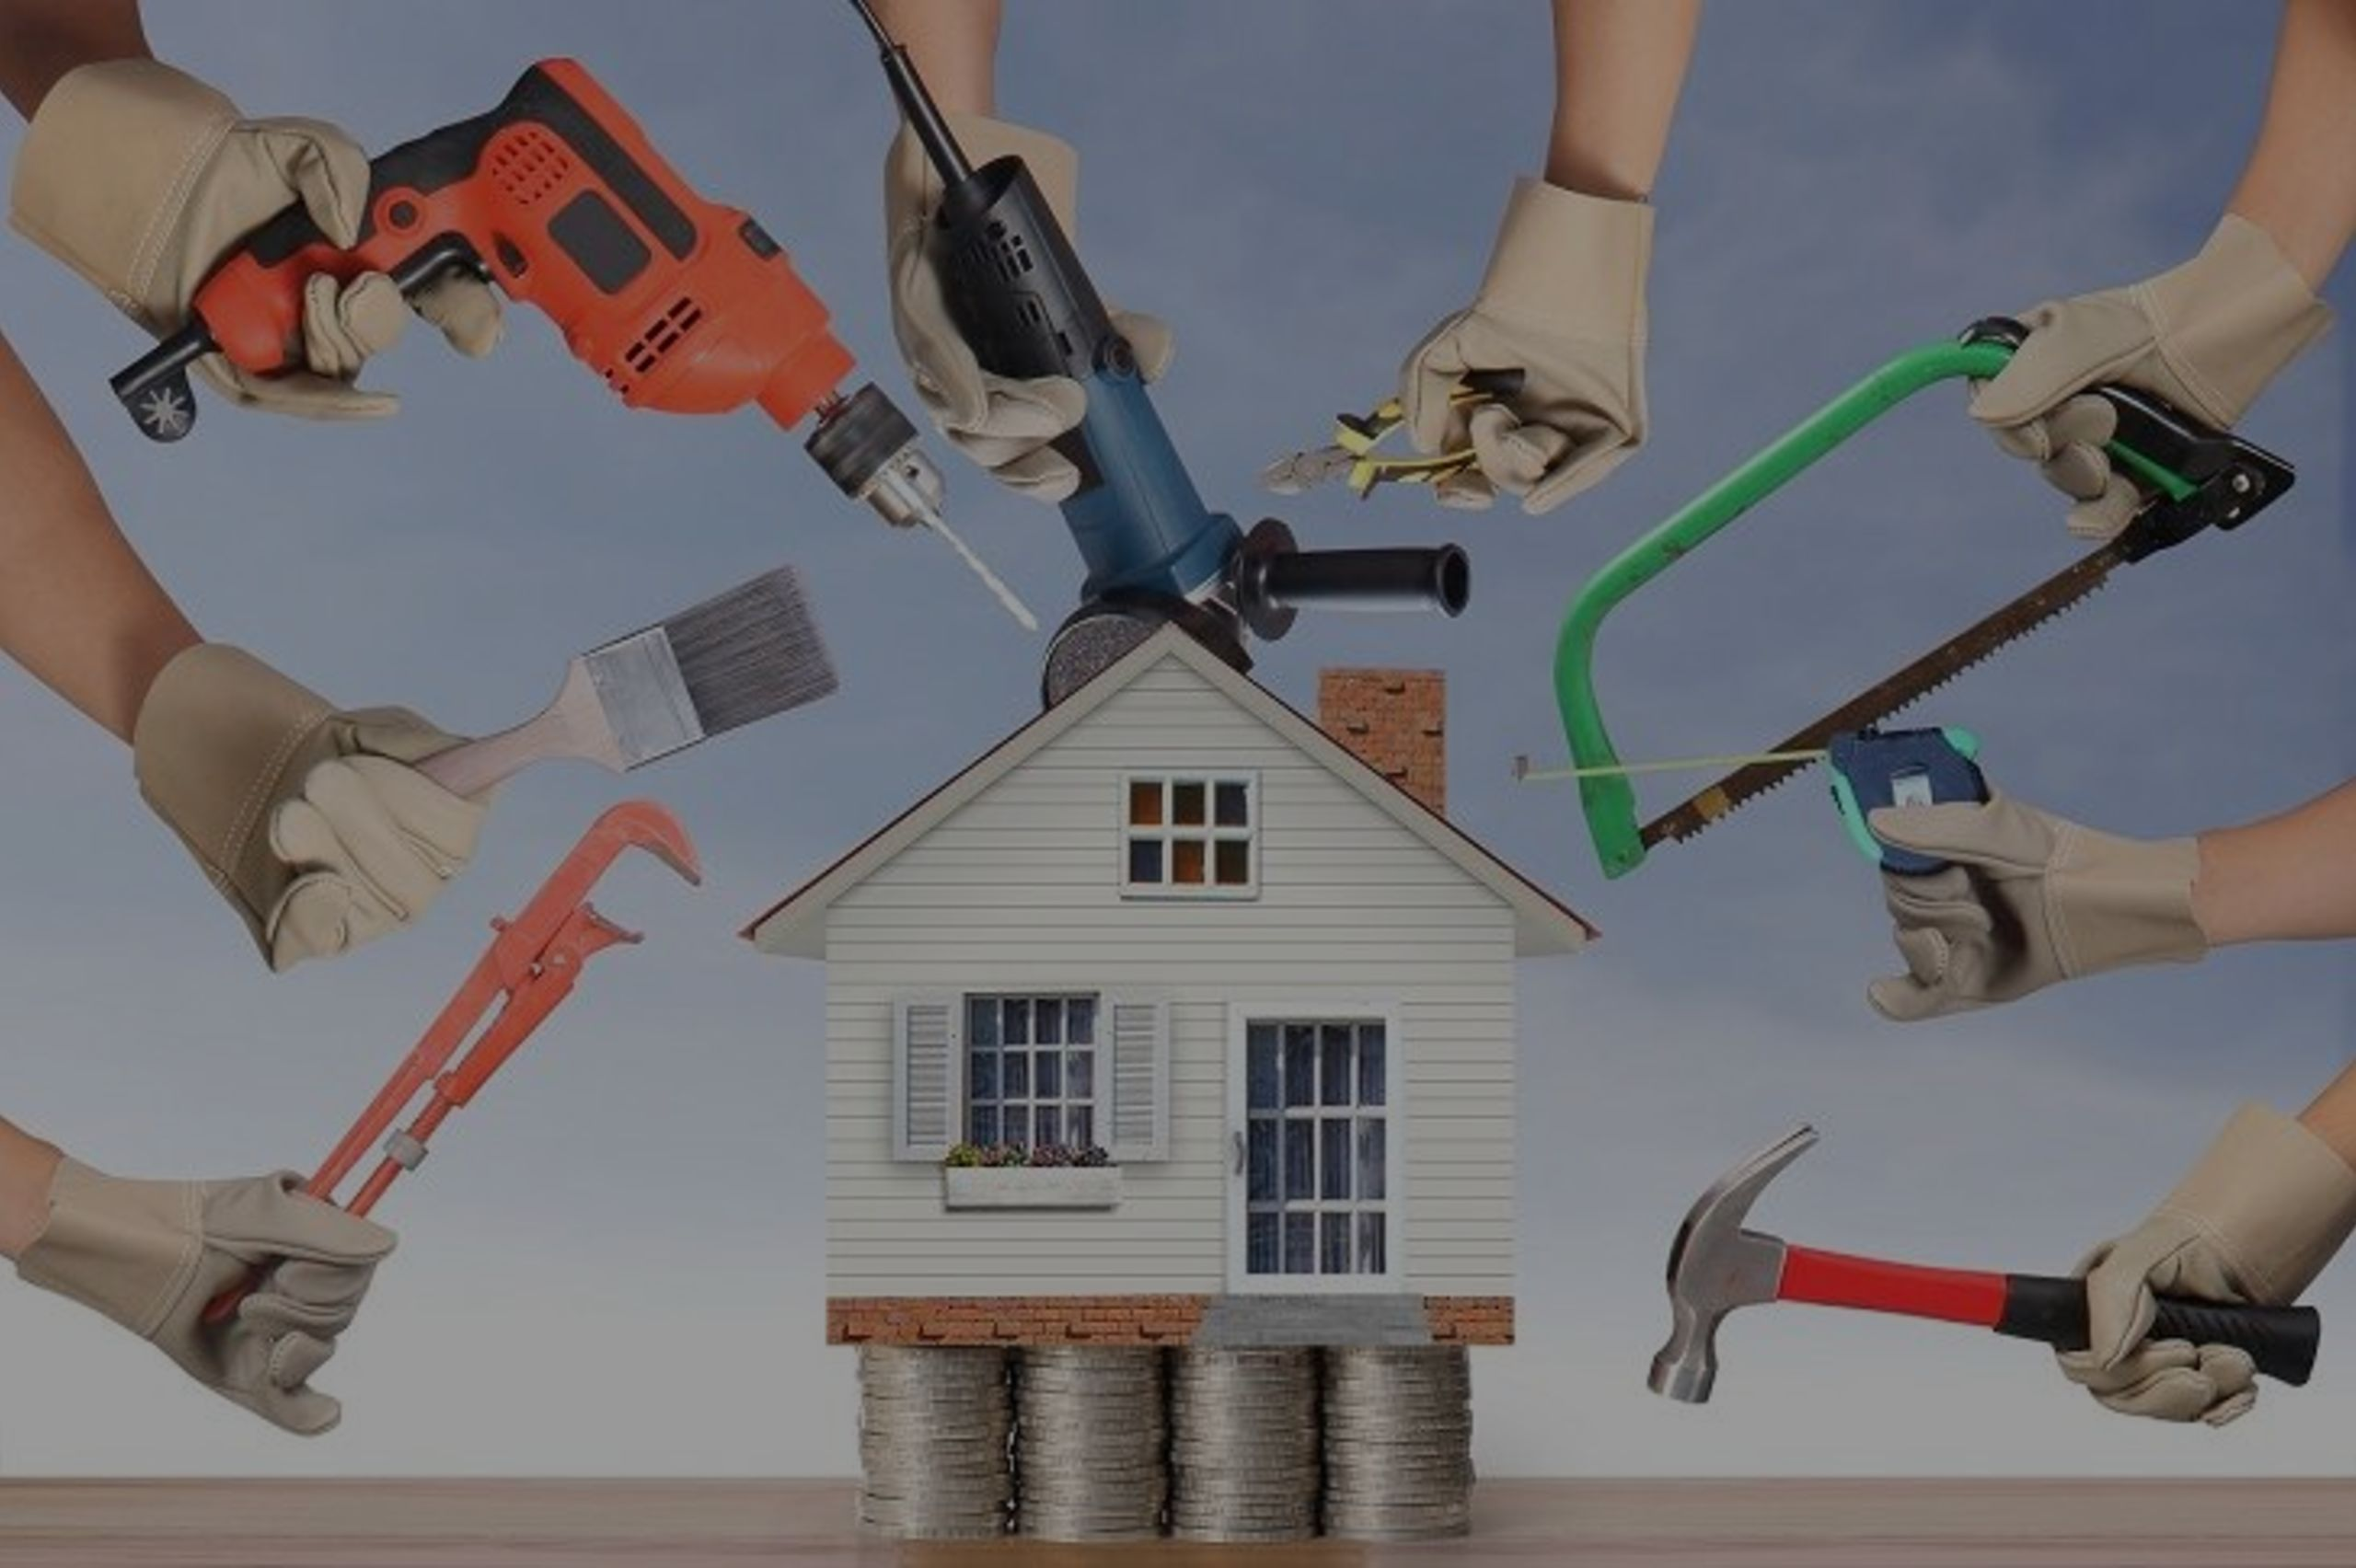 Home improvement tools: Why buy when you can rent?